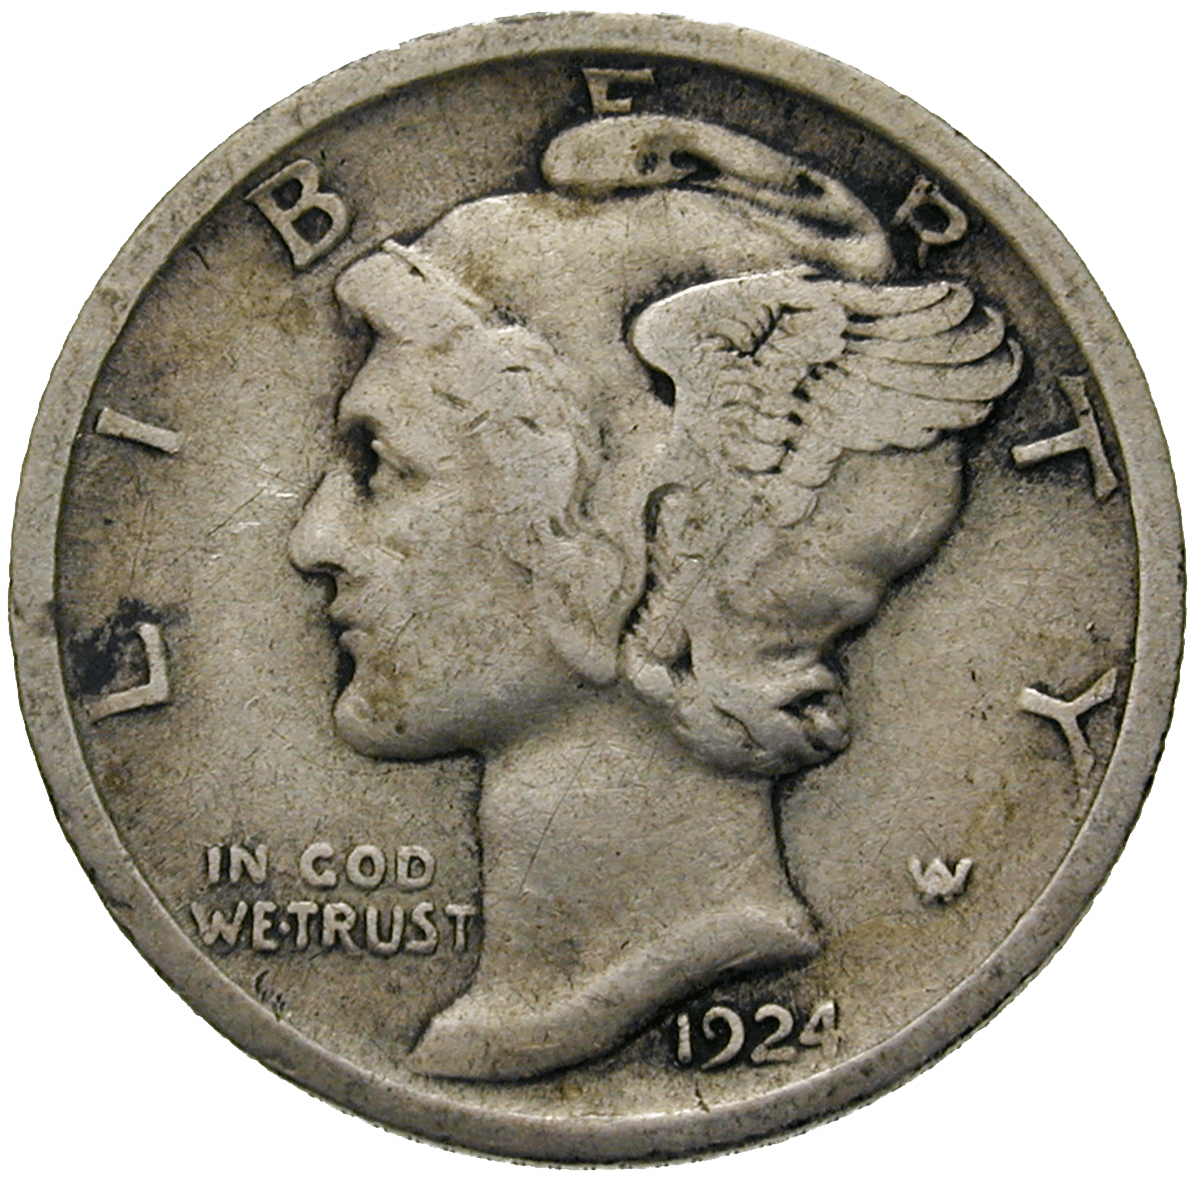 United States of America, 10 Cent 1924 (obverse)